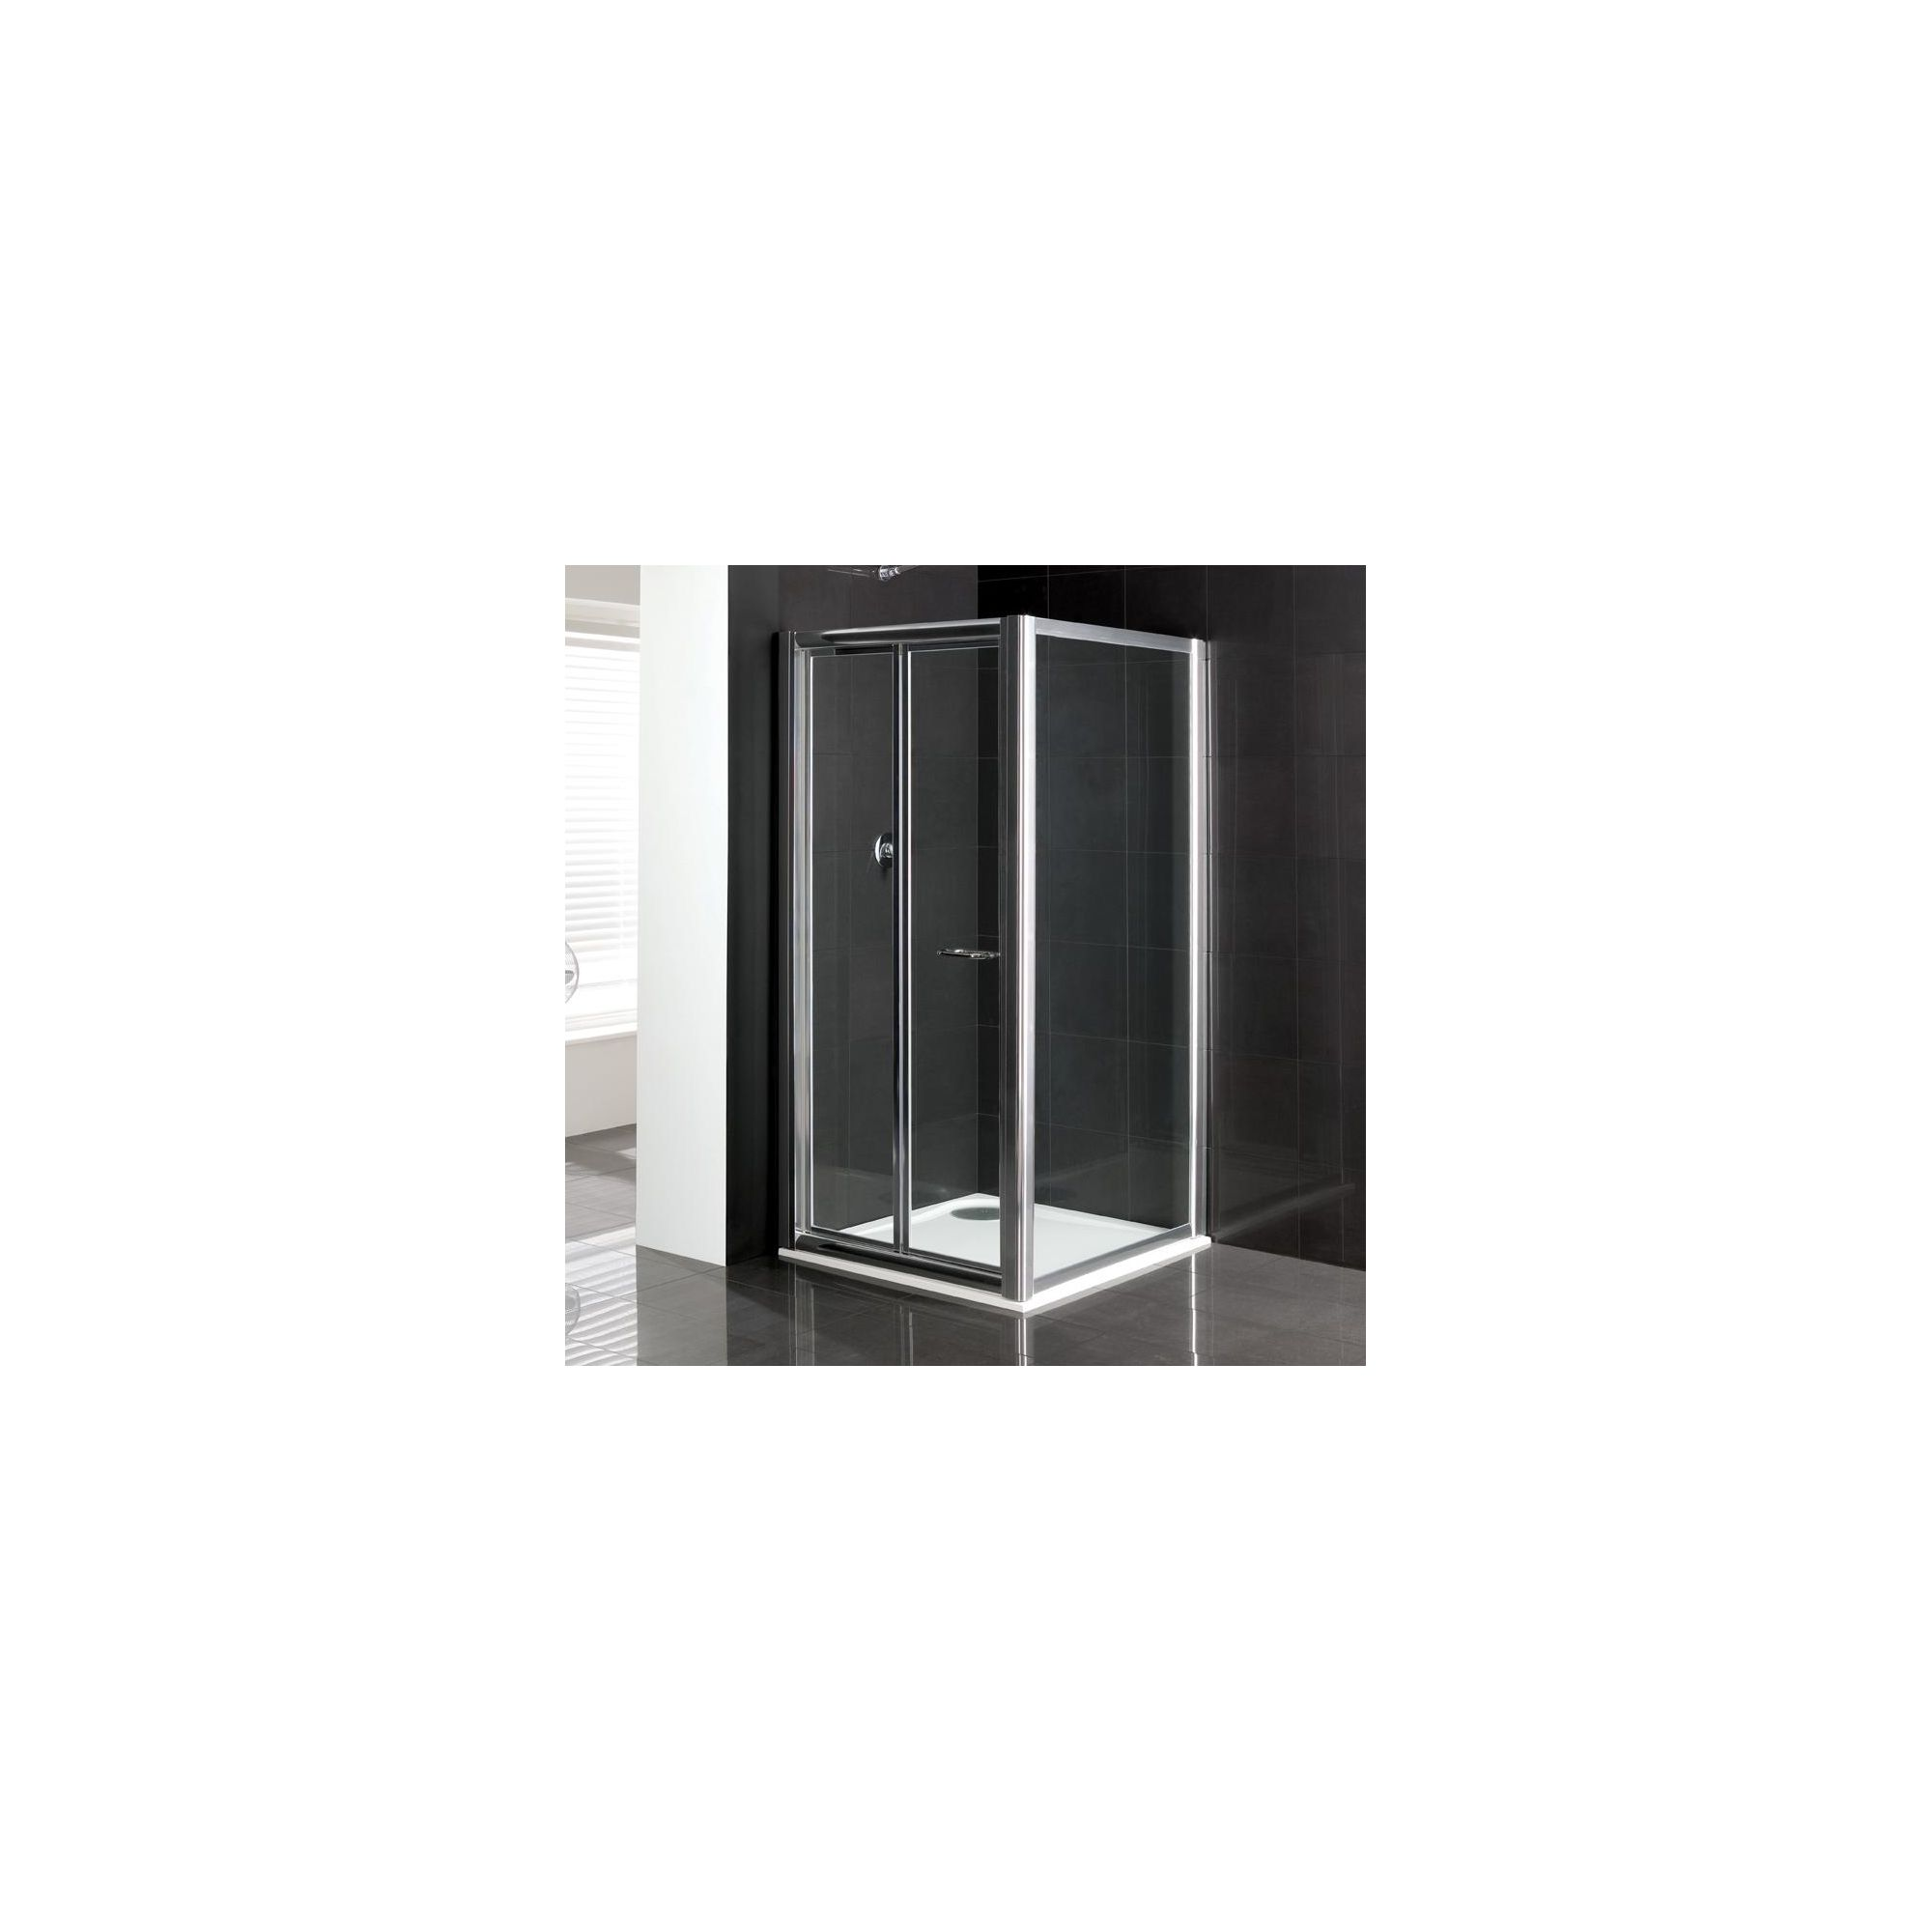 Duchy Elite Silver Bi-Fold Door Shower Enclosure with Towel Rail, 760mm x 760mm, Standard Tray, 6mm Glass at Tescos Direct